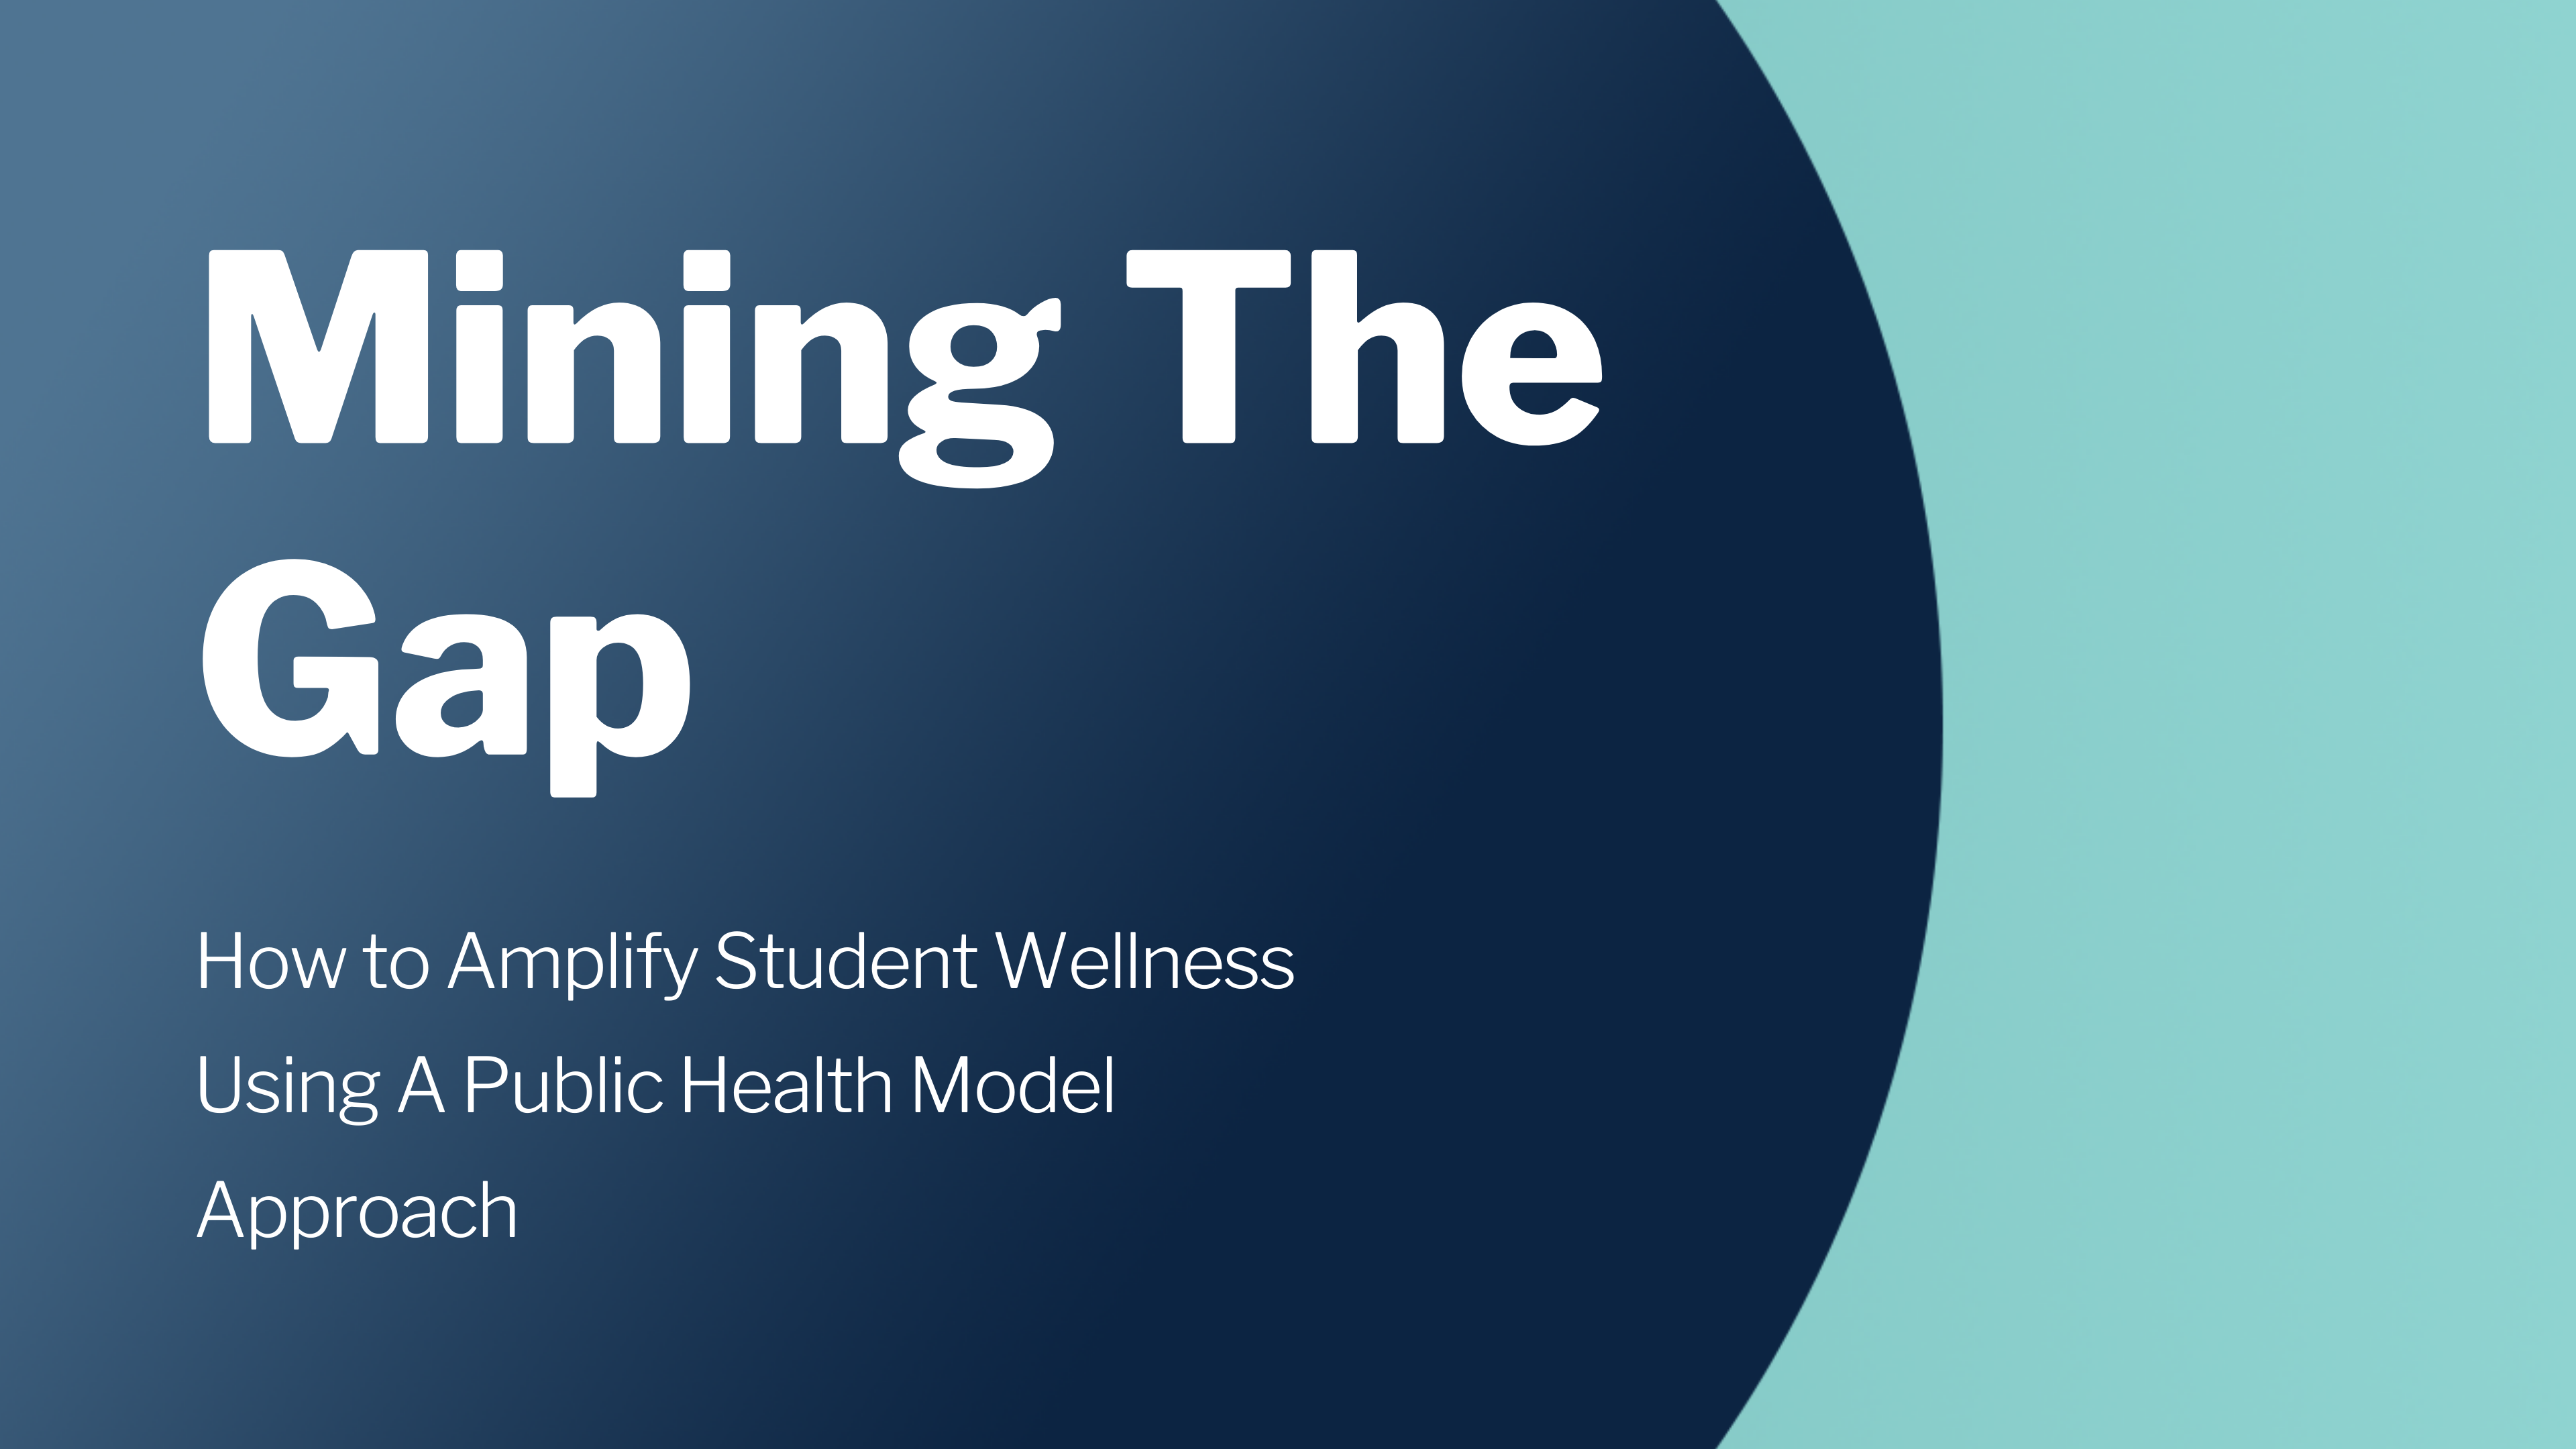 Mining The Gap_ How to Amplify Student Wellness Using A Public Health Model Approach